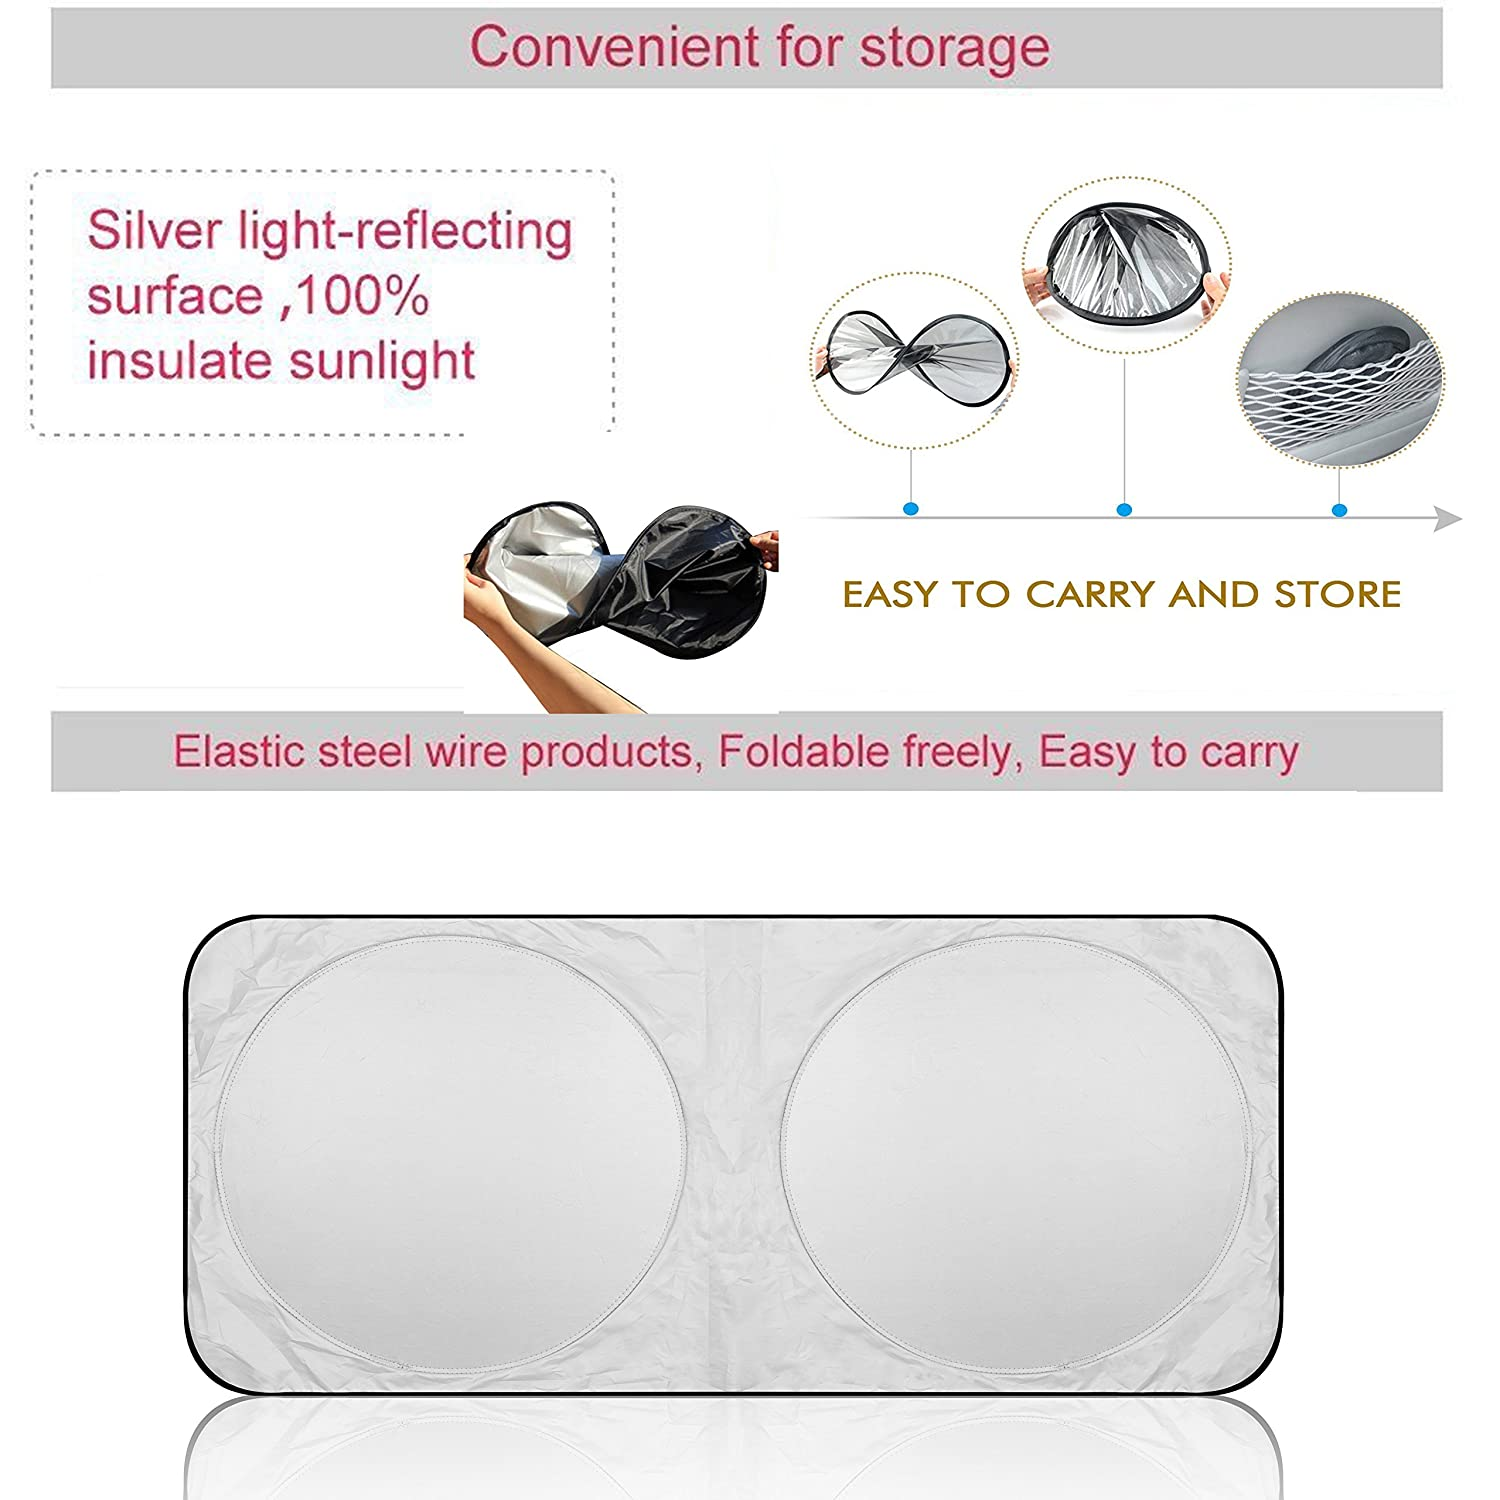 Easy to Use Keeps You Cool with a Pristine Interior Excellent UV Reflector Sojoy 2 Sided Car Sunshade /& Window Sun Shield